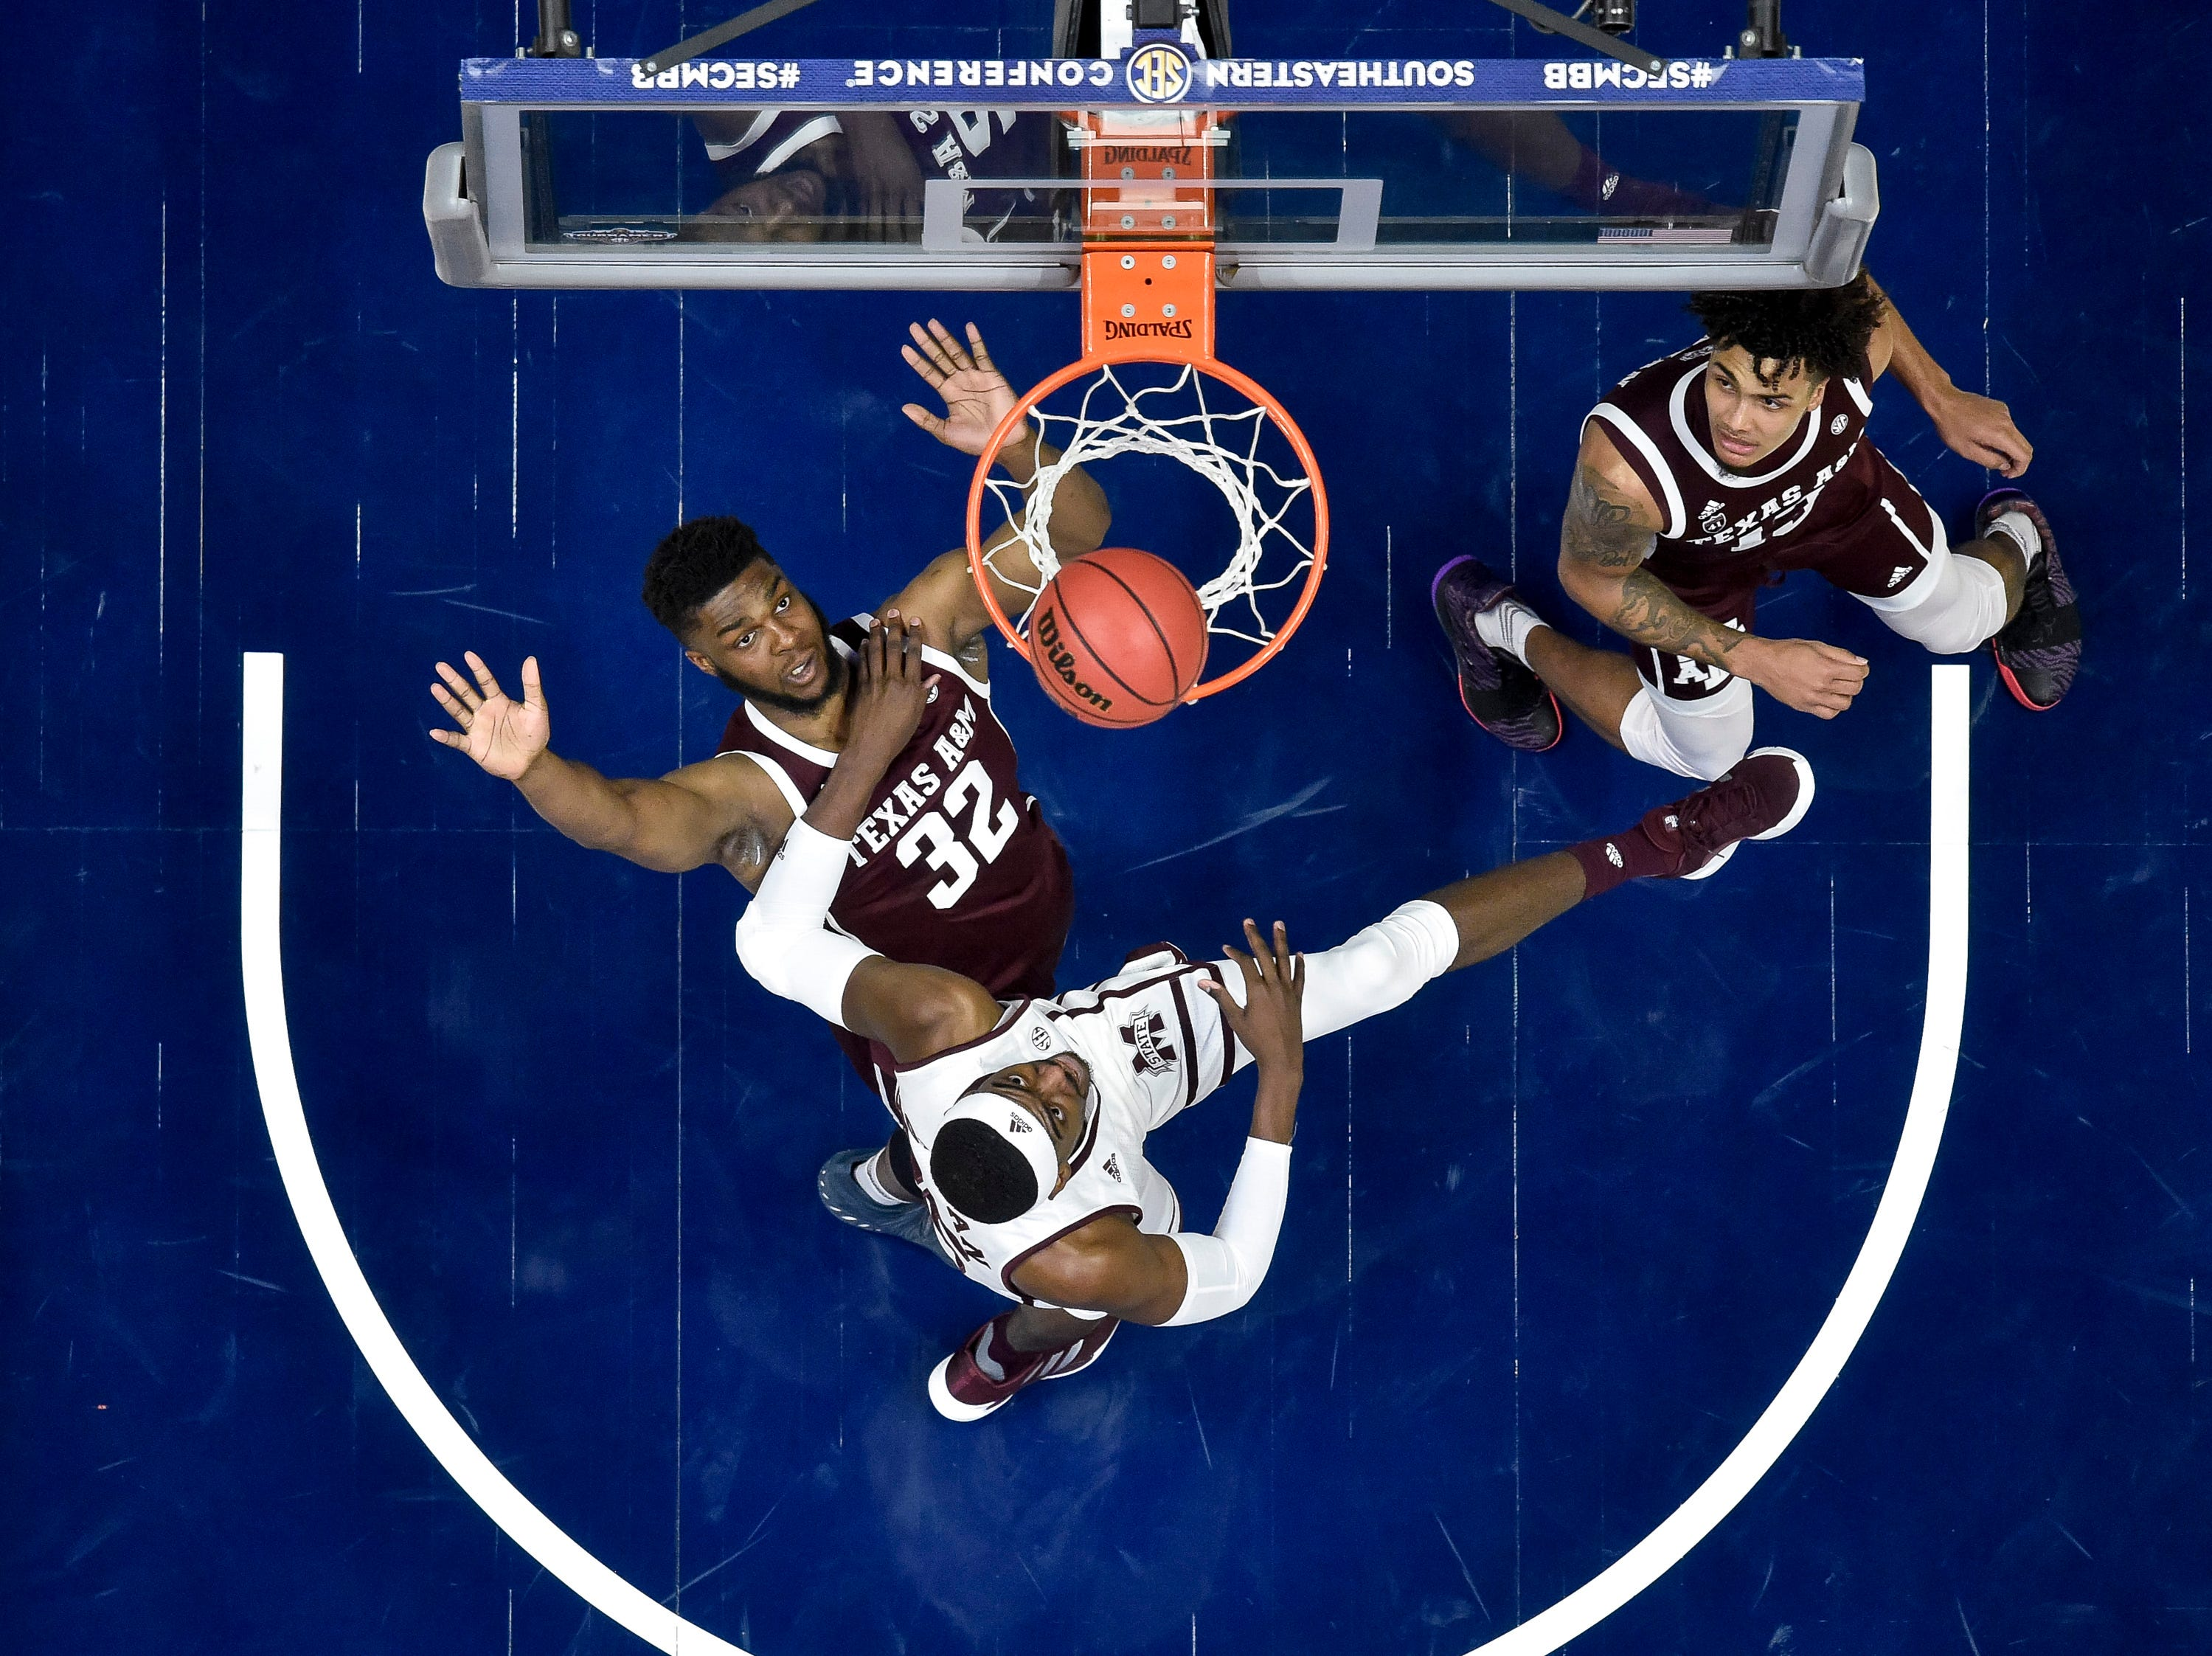 Mississippi State forward Aric Holman (35) shoots past Texas A&M forward Josh Nebo (32) during the first half of the SEC Men's Basketball Tournament game at Bridgestone Arena in Nashville, Tenn., Thursday, March 14, 2019.